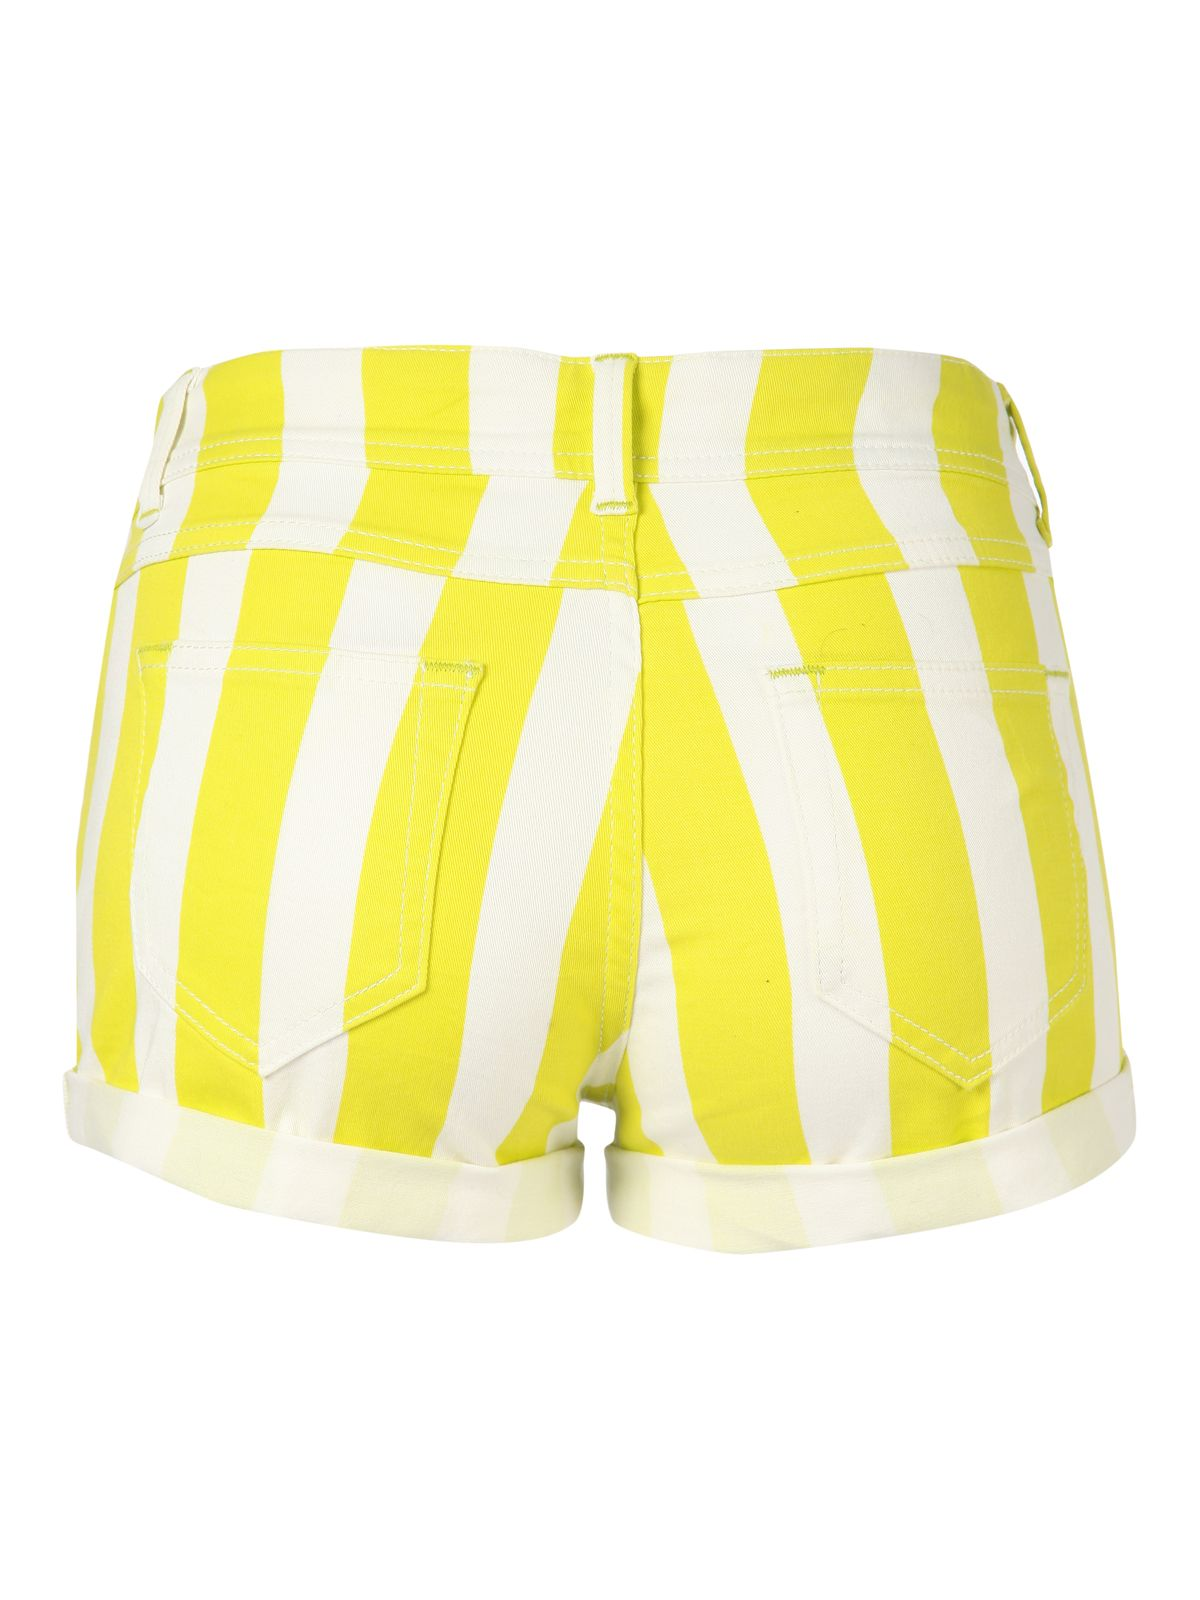 Stripe denim hot pant shorts